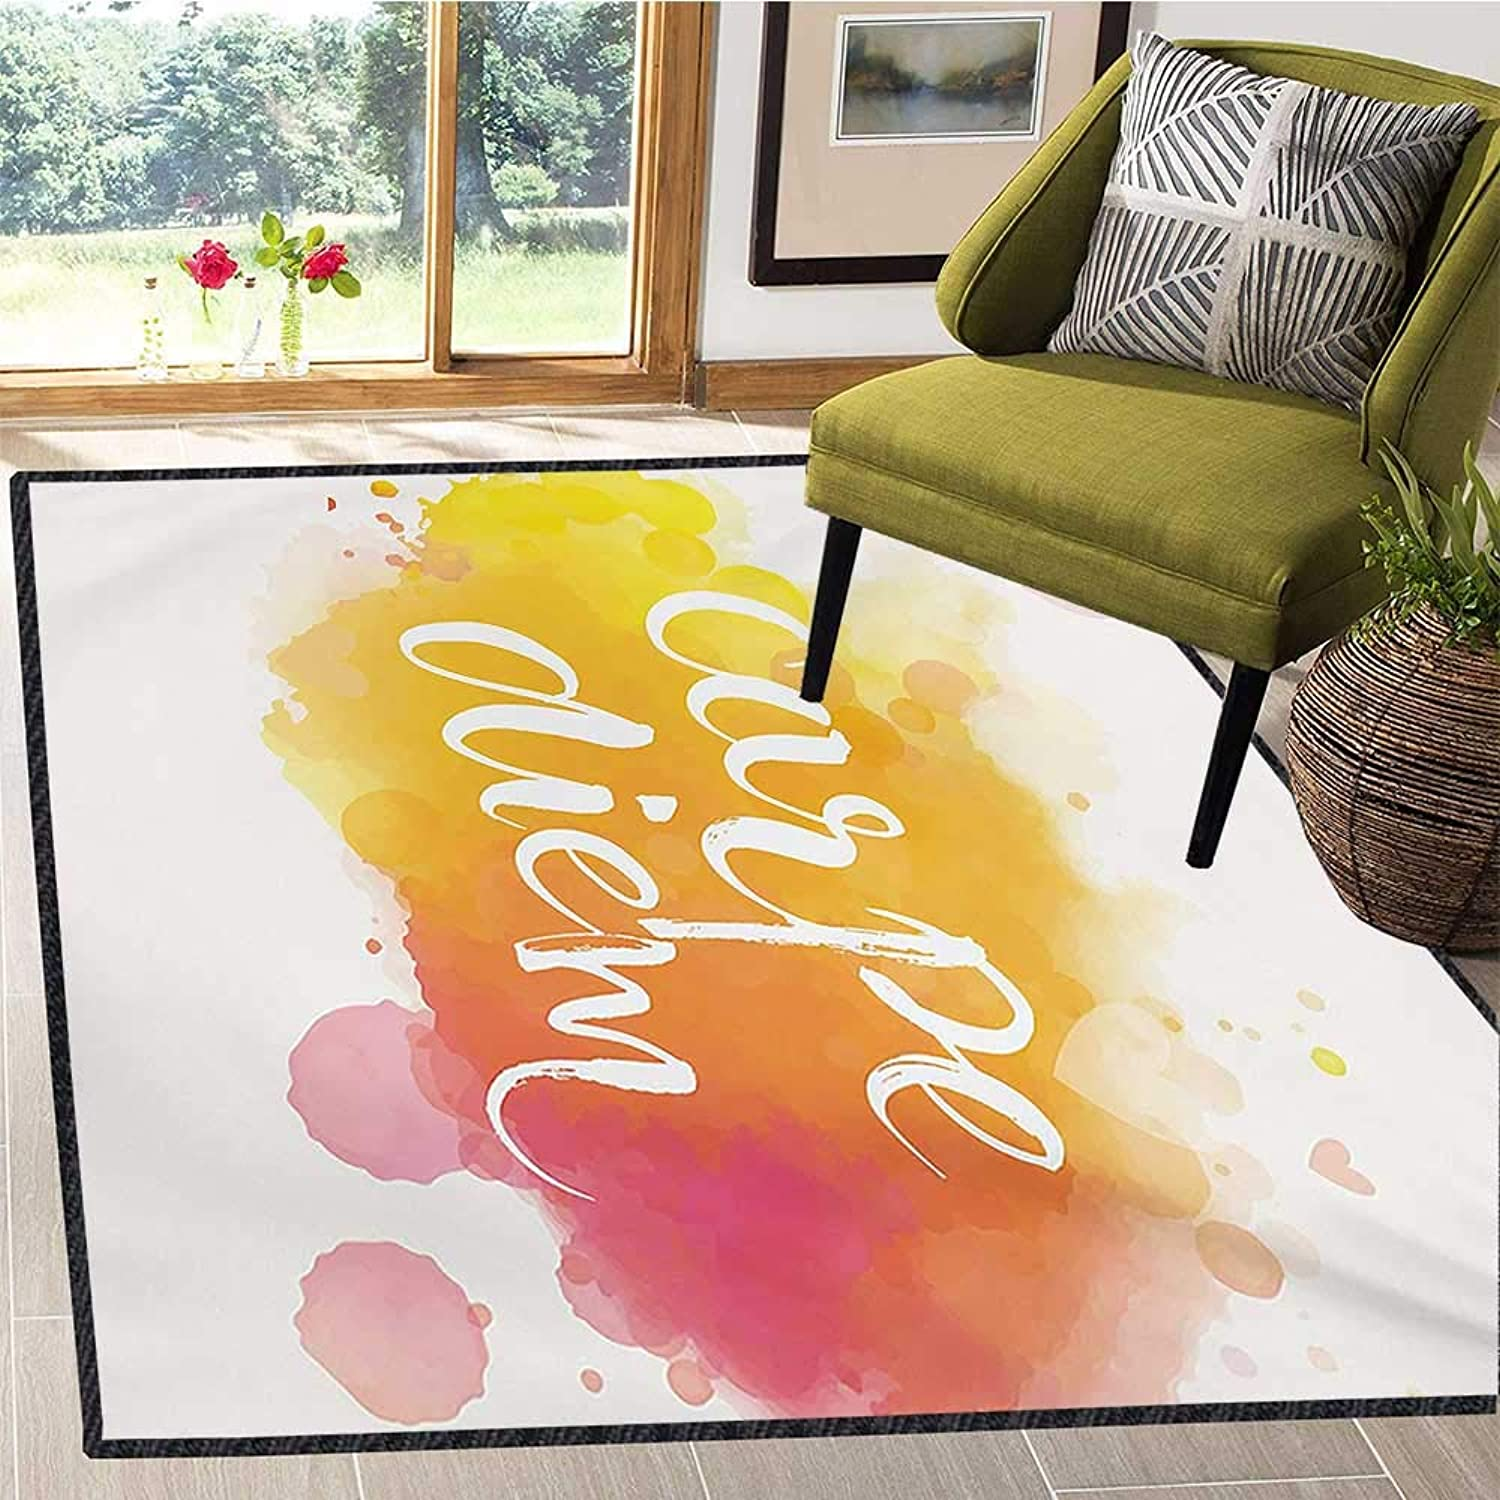 Yellow and White, Door Mats Area Rug, Watercolor Style with Carpe Diem Seize The Day Enjoy The Moment, Door Mat Indoors 5x6 Ft Yellow Marigold Pink